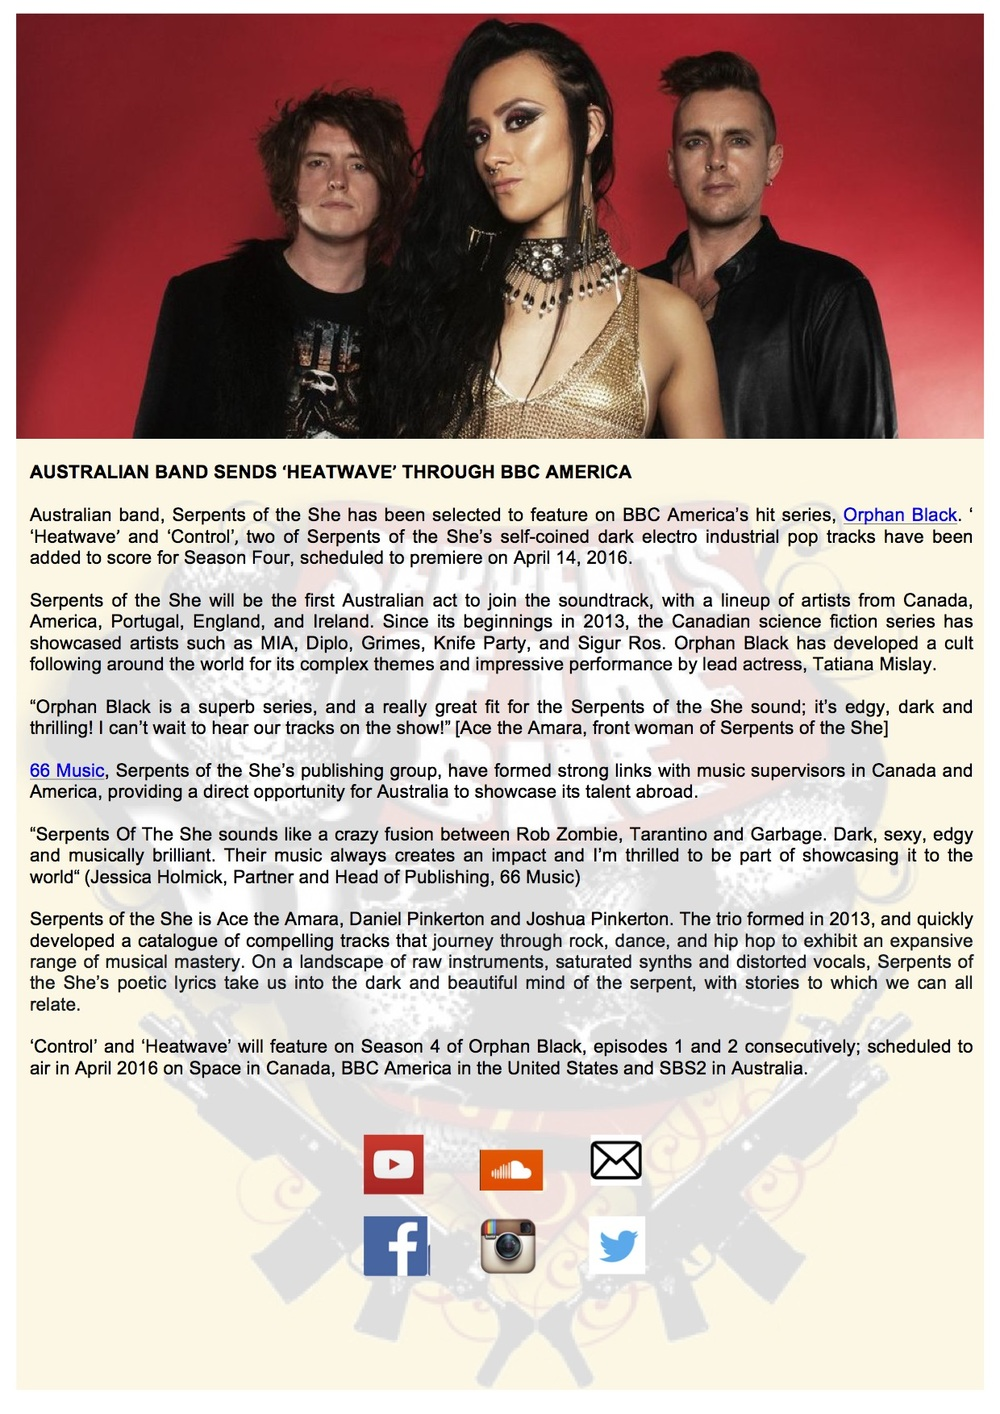 Press Release by Ace the Amara, created for Serpents Of The She (Australian band) 2016.